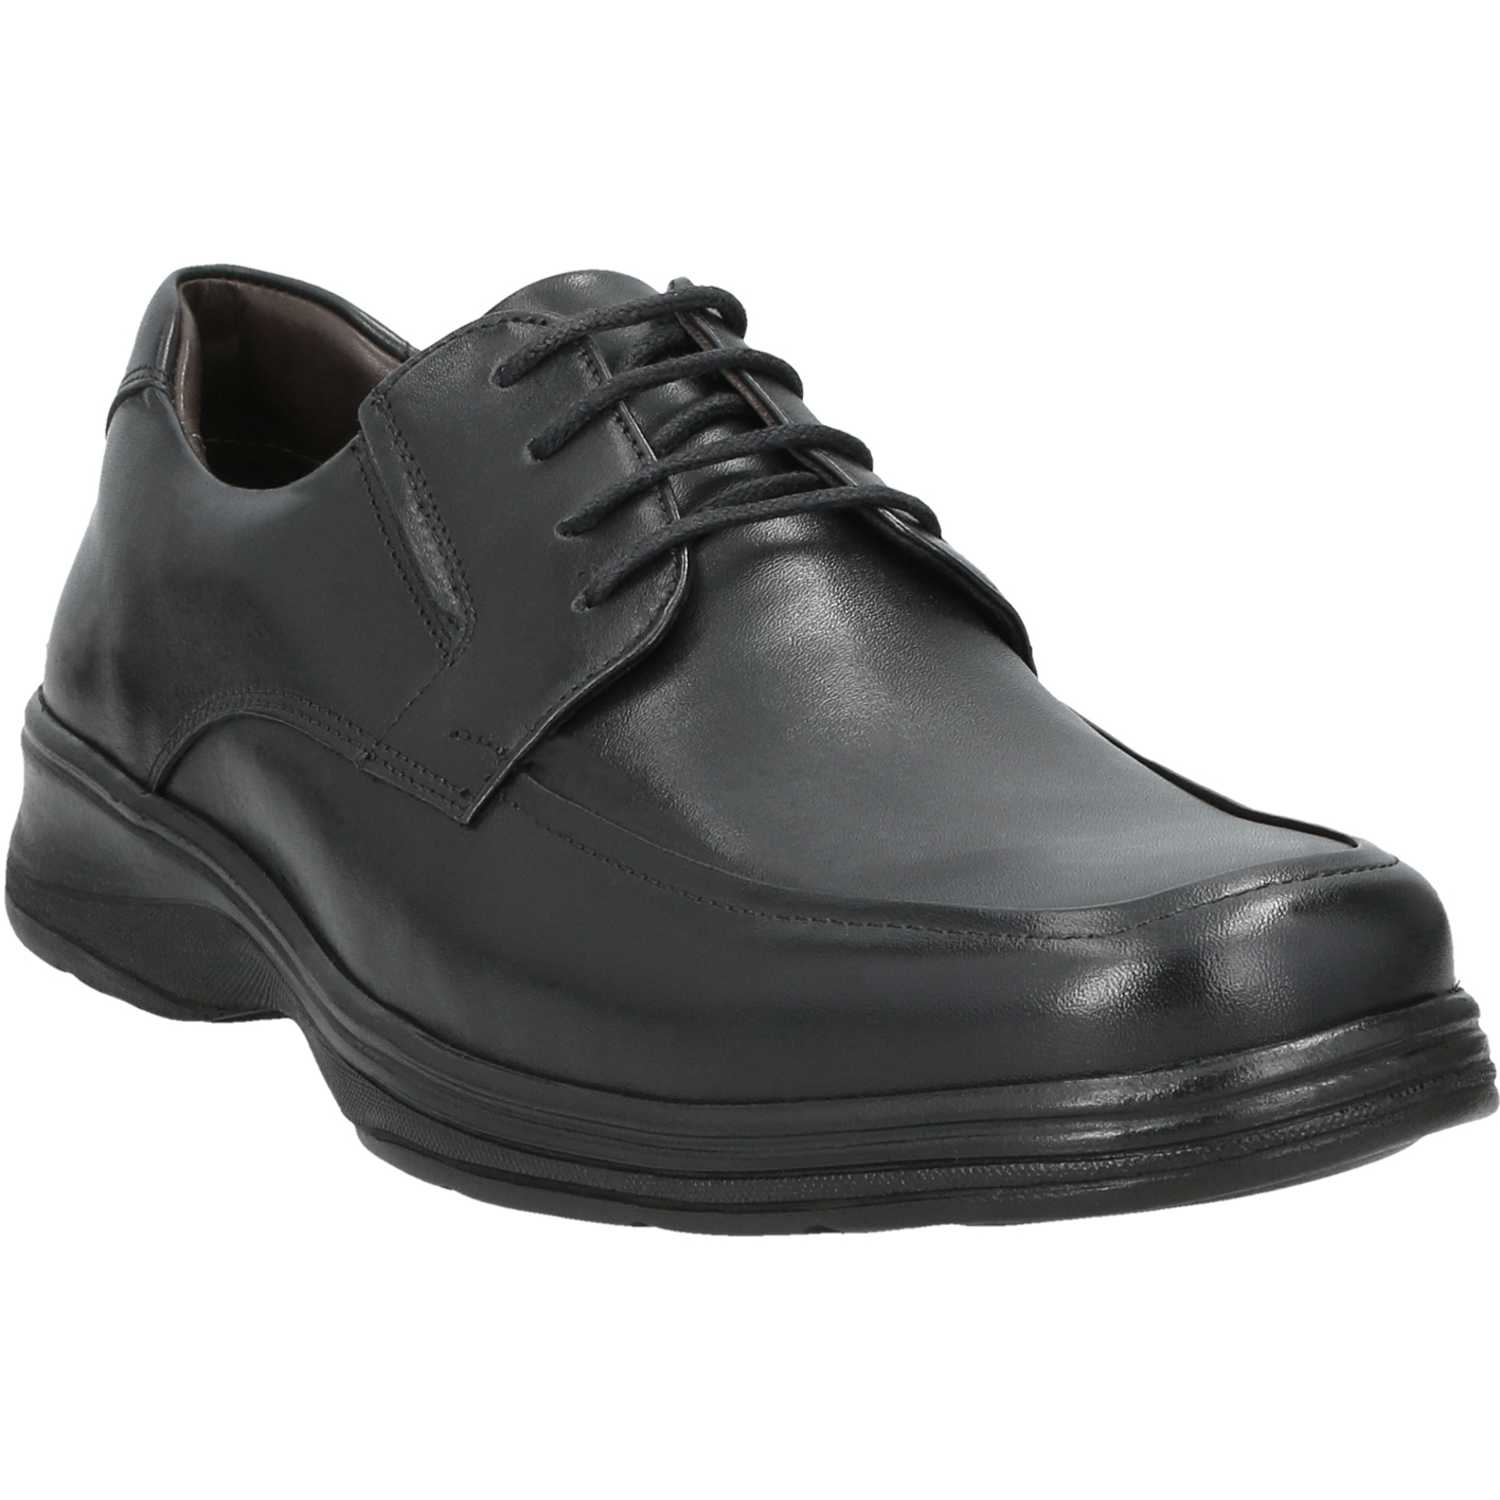 GUANTE springsys Negro Oxfords